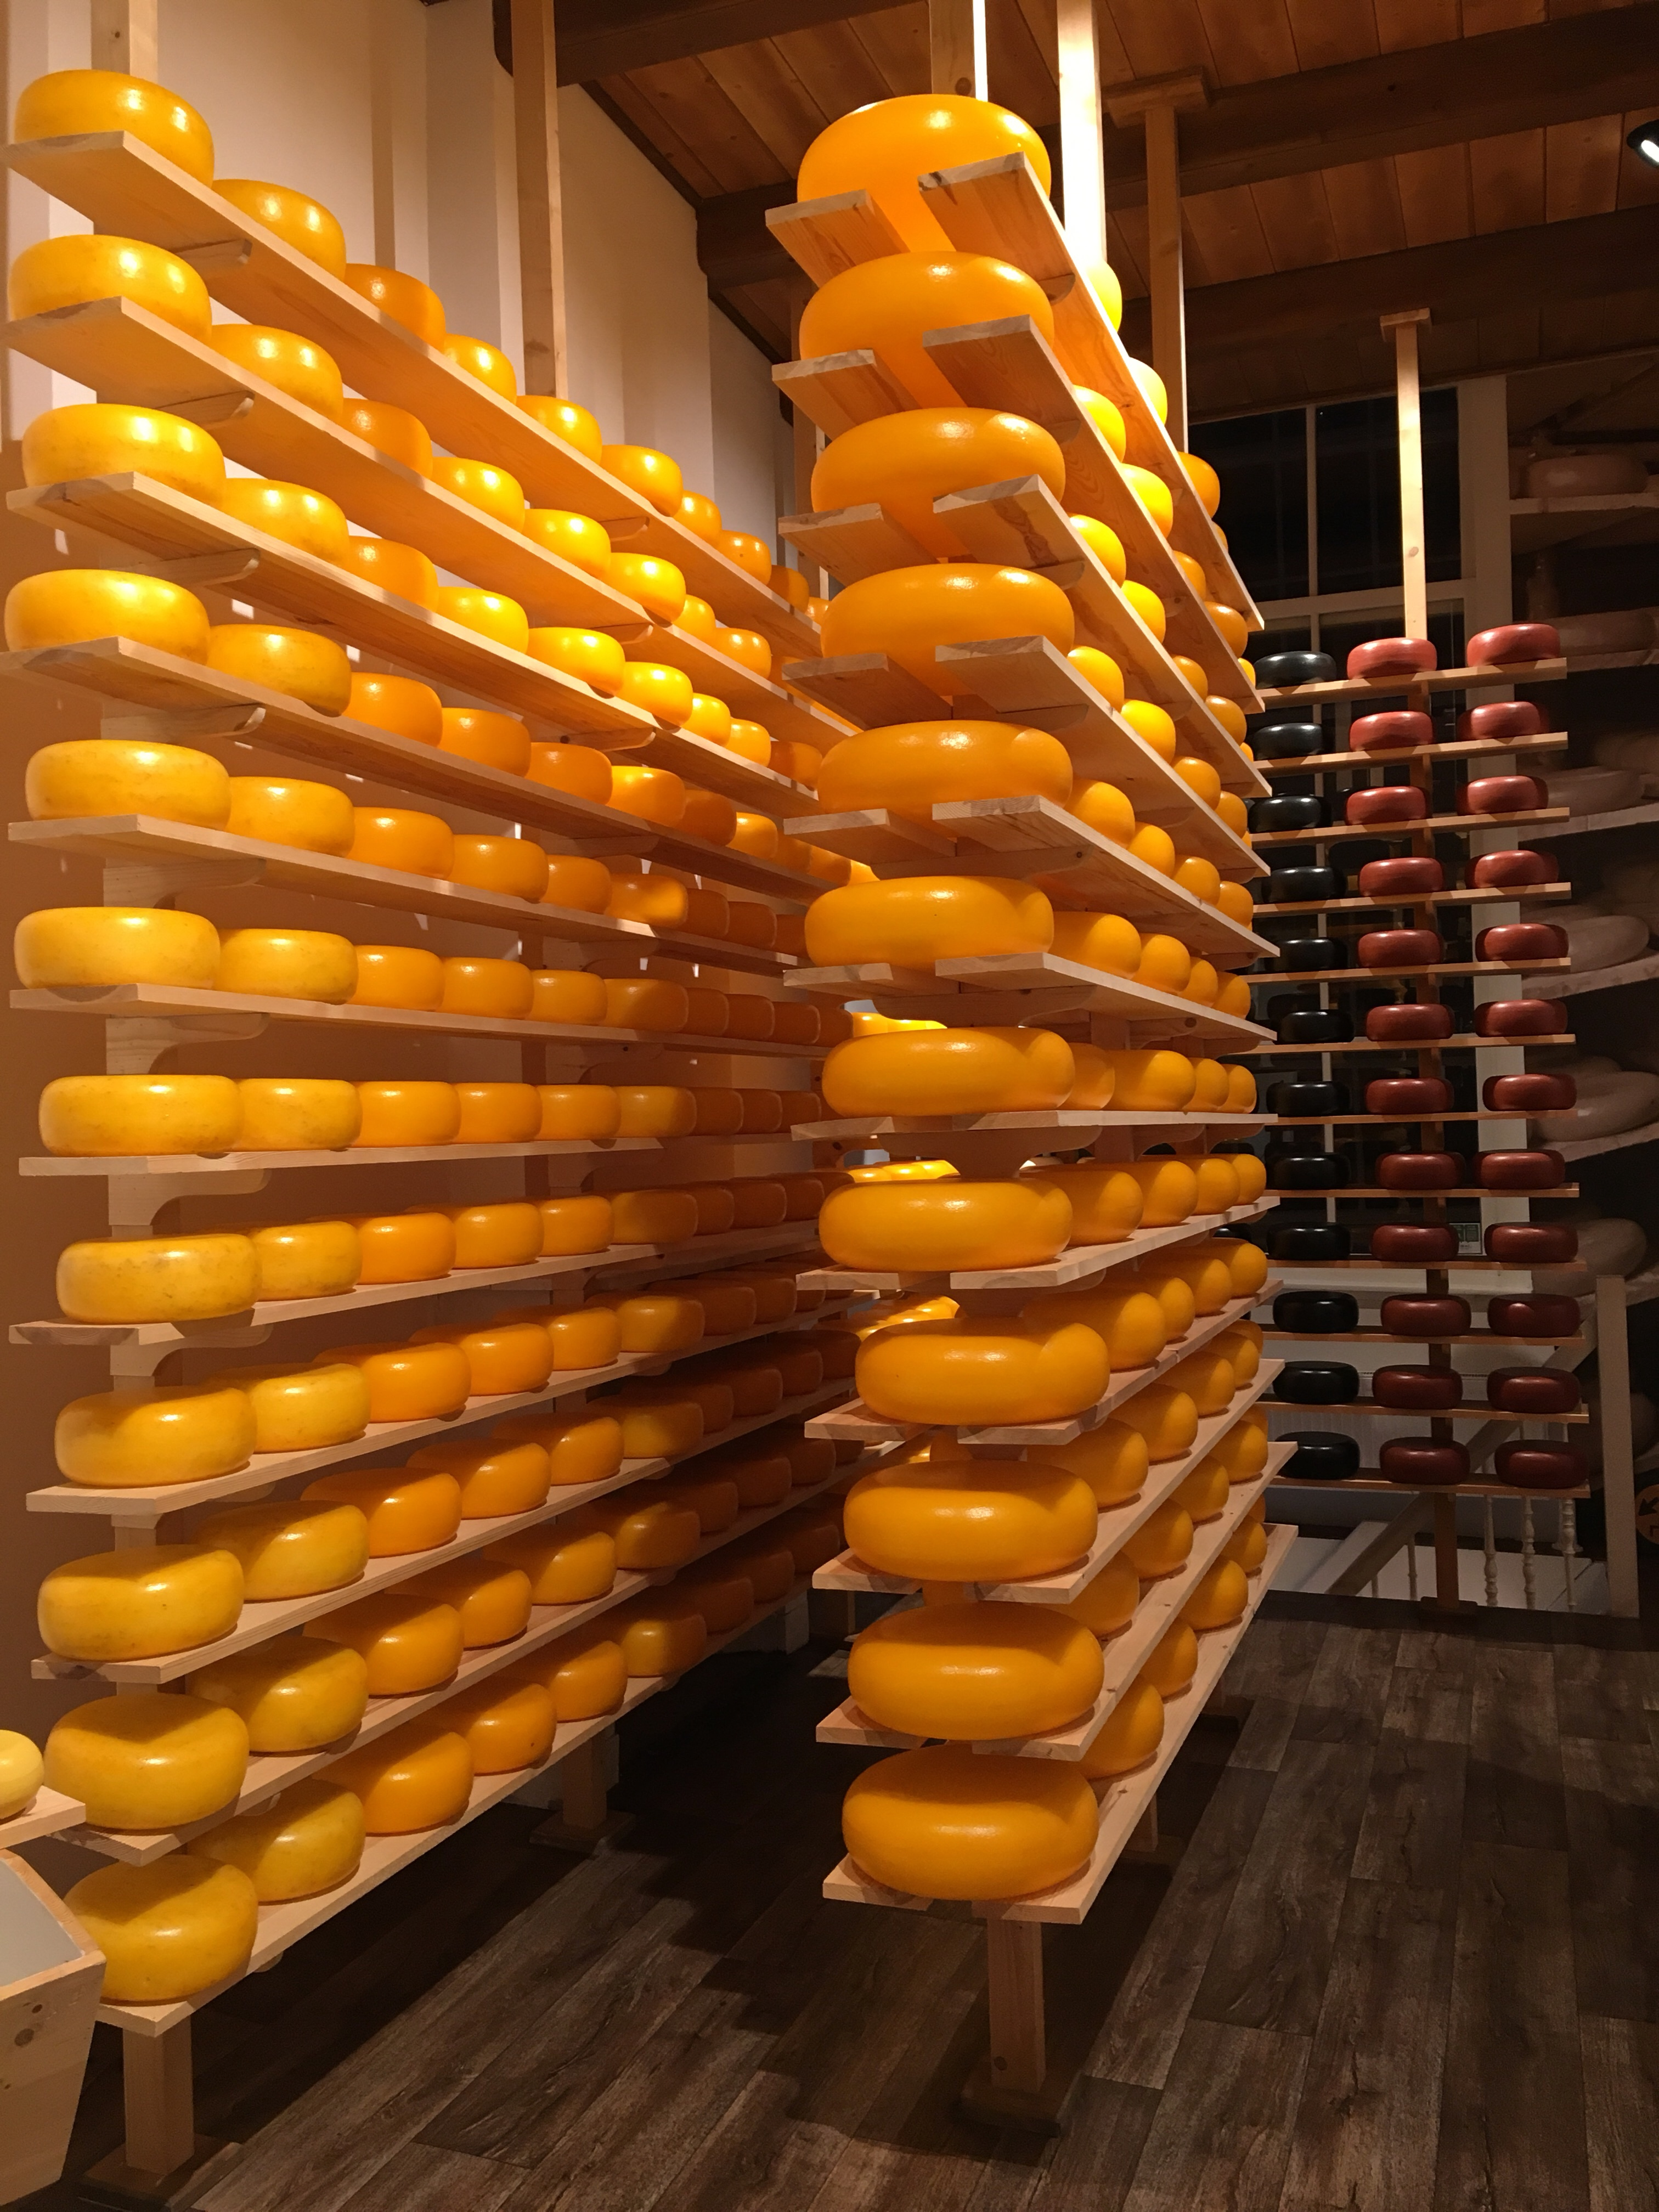 Cheese museum with hundreds of rolls of cheese on shelves